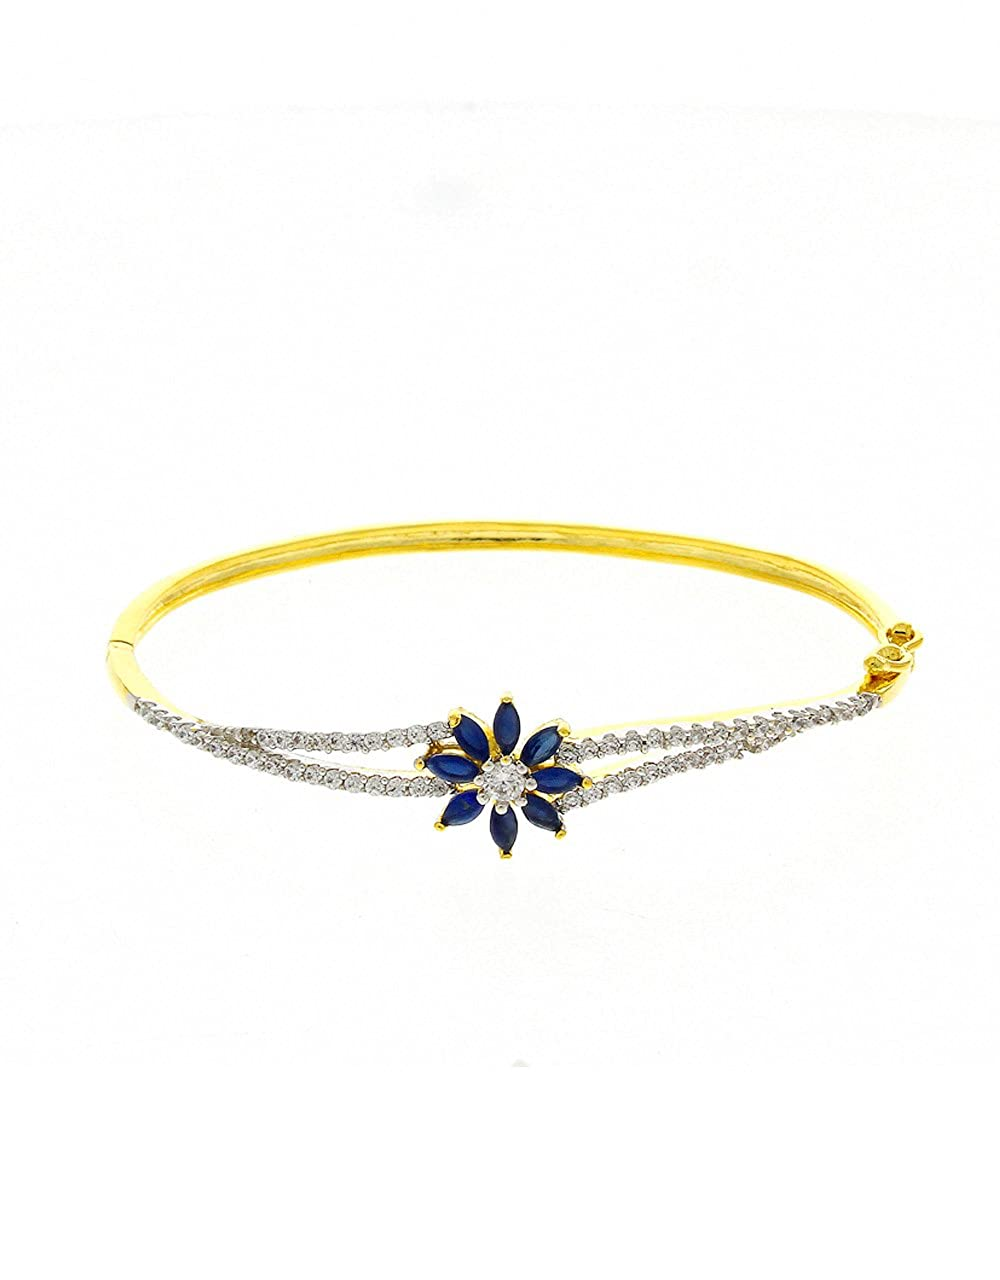 Anuradha Art Golden Finish Styled with Blue Colour Studded Shimmering American Diamonds Classy Hand Bracelets//Kada for Women//Girls